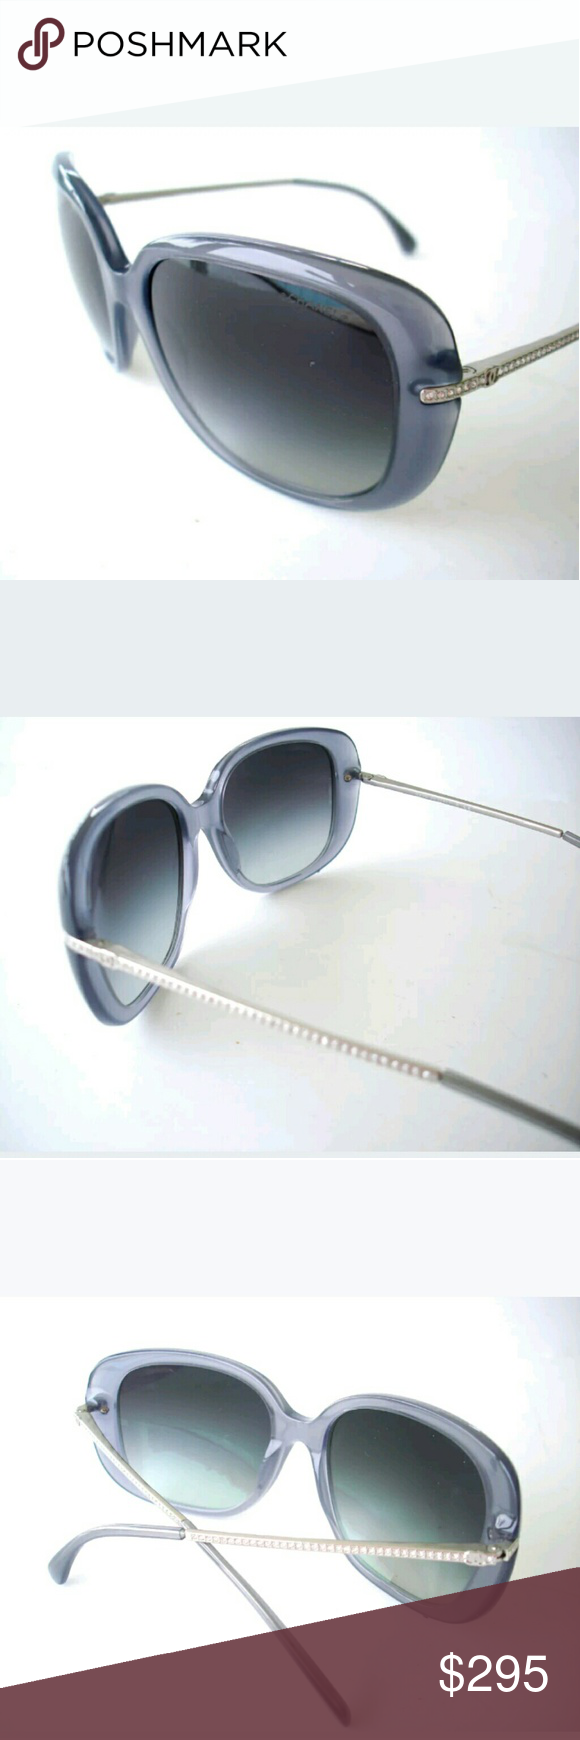 Chanel Sunglasses | Greyish blue, Chanel sunglasses and Conditioning